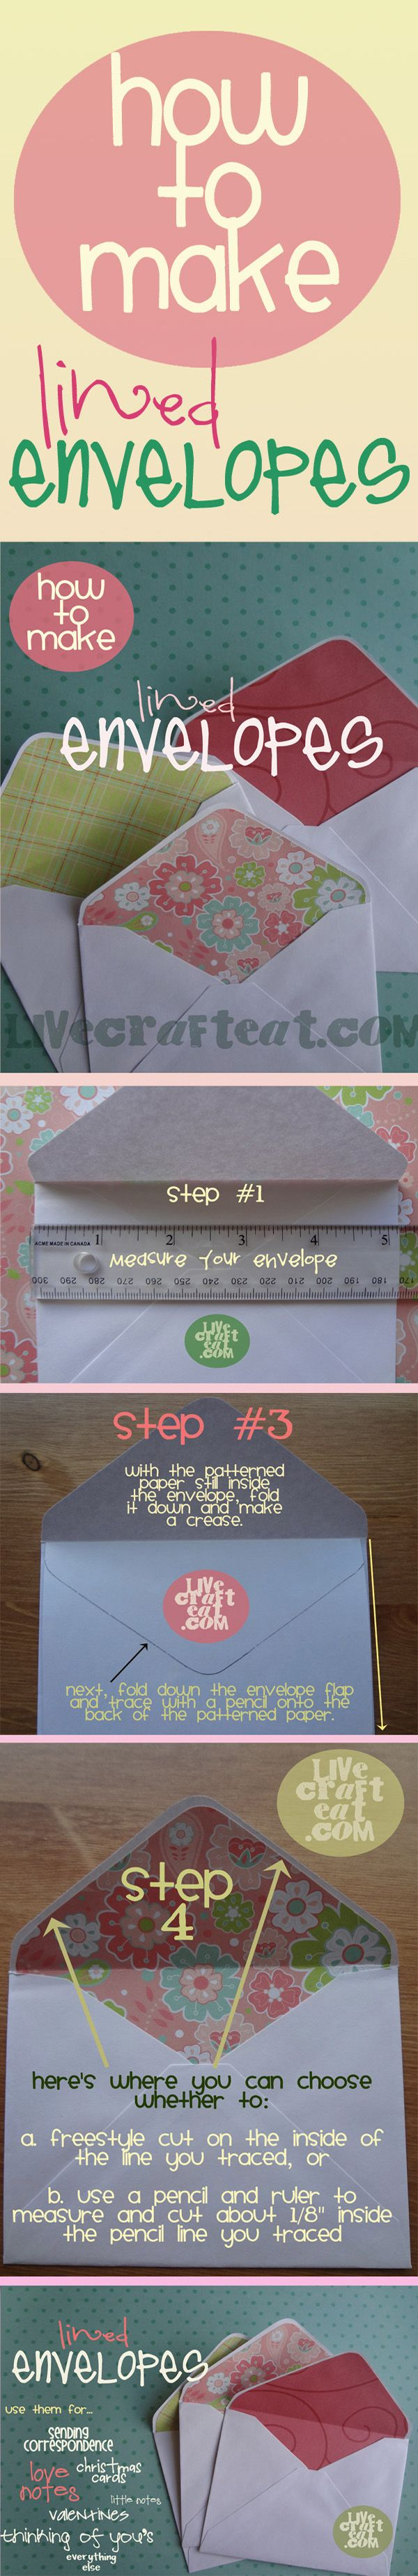 How To Make Lined Envelopes...the easy way.  Now you can have a lovely matching envelope for all your wonderful homemade cards!  Instructions included.